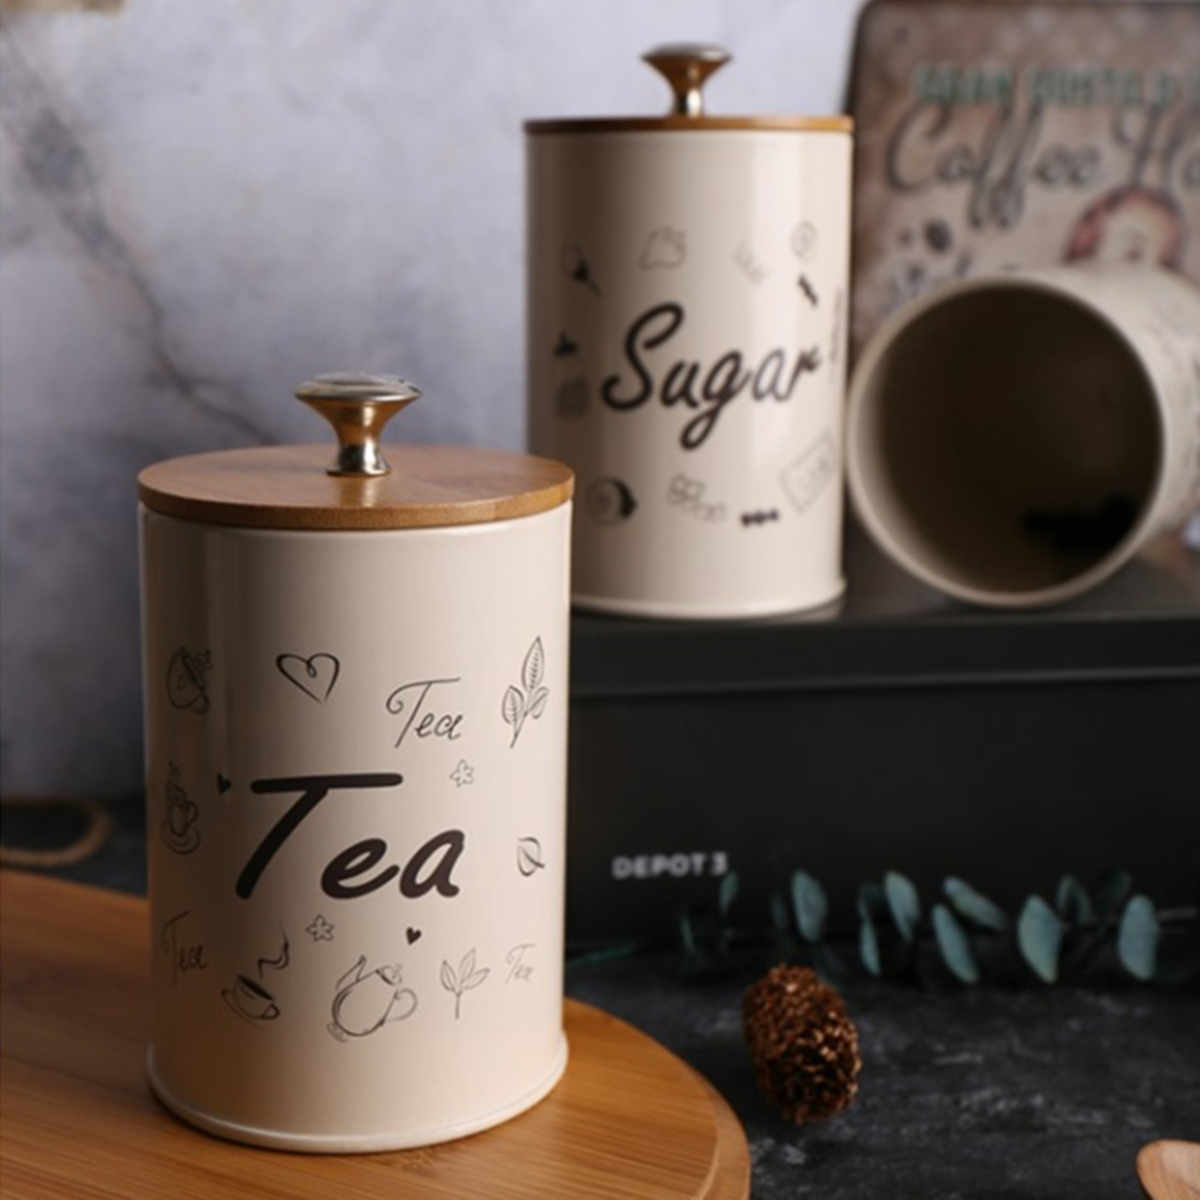 3PCS Retro Tea Coffee Sugar Kitchen Storage Container Canisters Jars Pots Tins